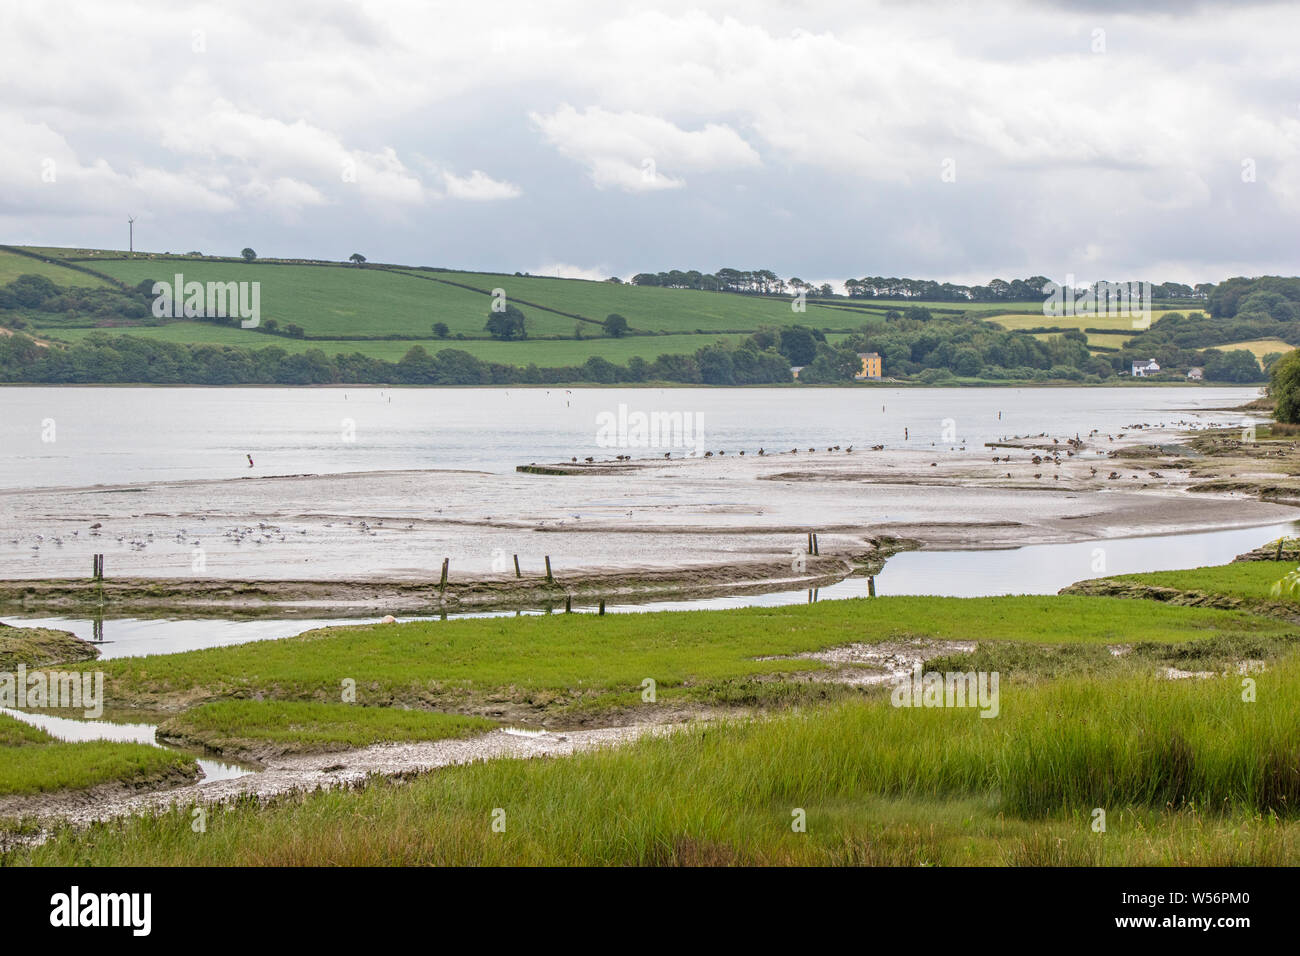 The looking across the Teifi estuary between Cardigan and Poppit Sands, Ceredigion, Wales, UK Stock Photo